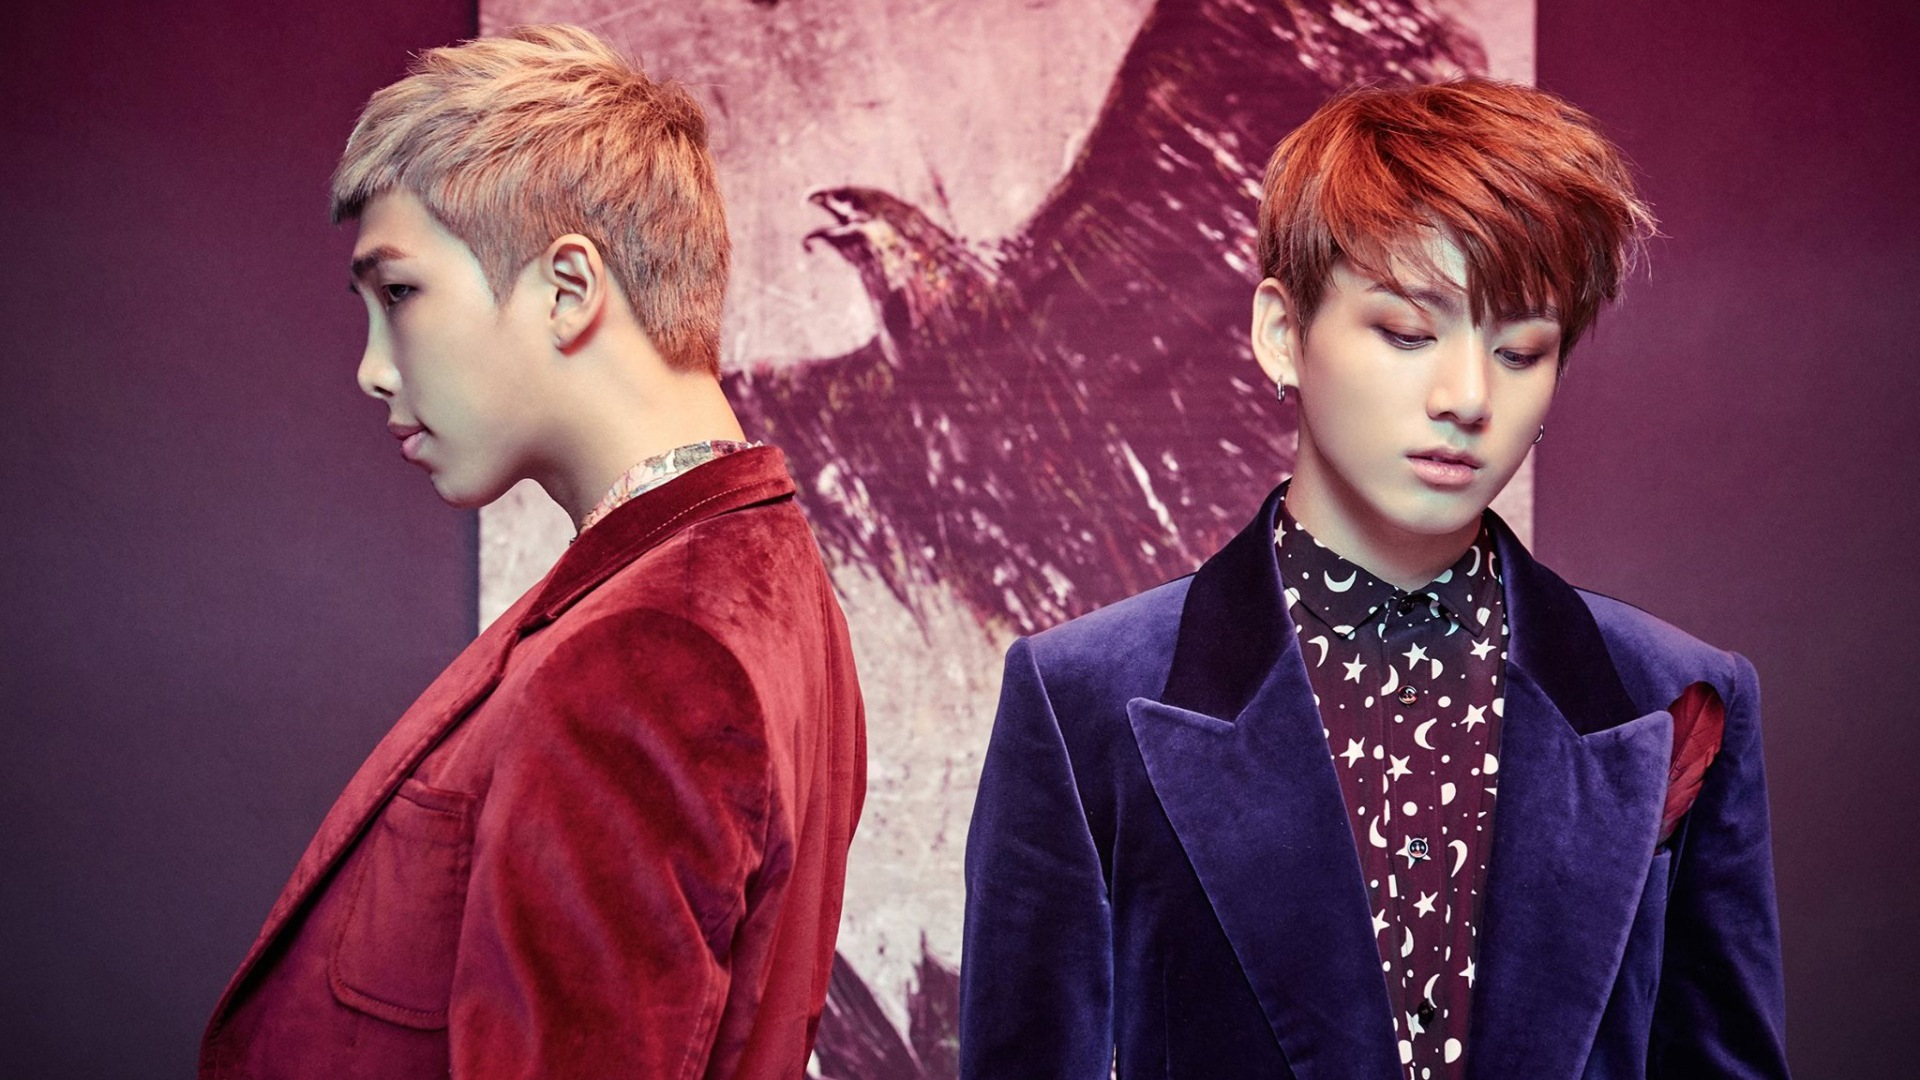 Kim Namjoon BTS images RM and Jungkook HD wallpaper and background 1920x1080